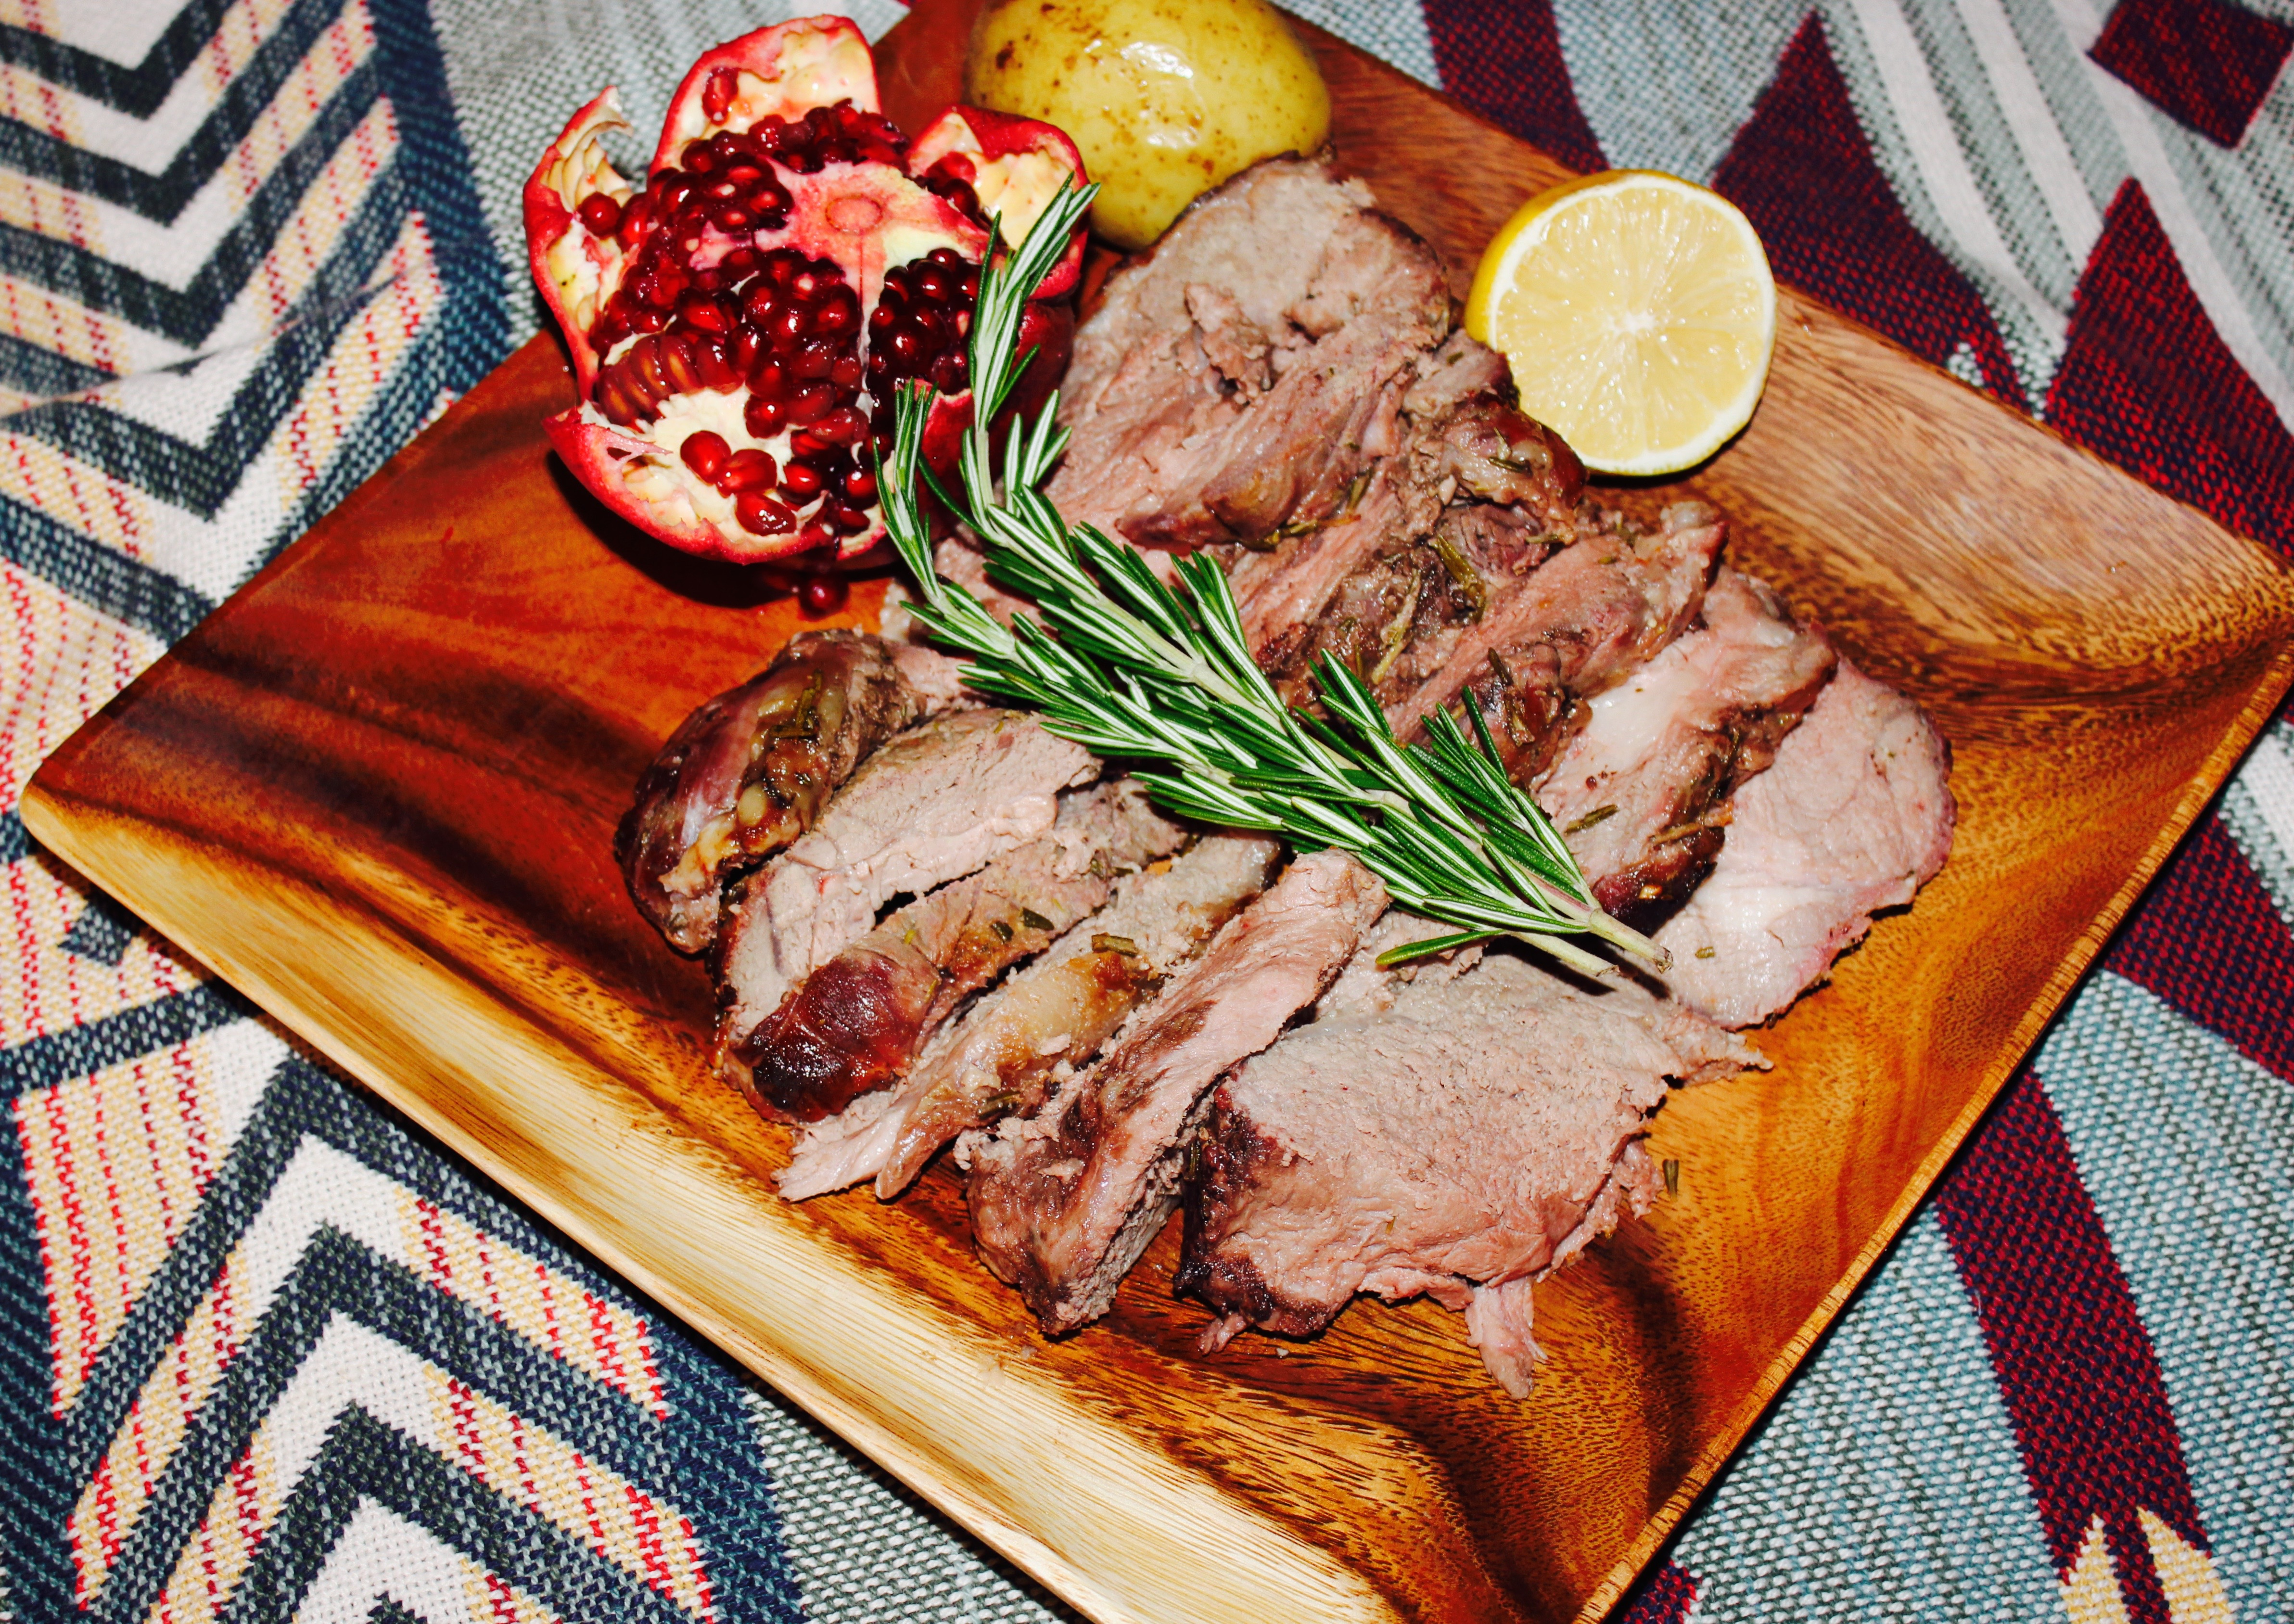 Leg of lamb cooked and sliced onto a wood plate, with a pomegranate opened, one large Yukon gold potato, a half lemon, and two stalks of Rosemary laid across the sliced lamb.